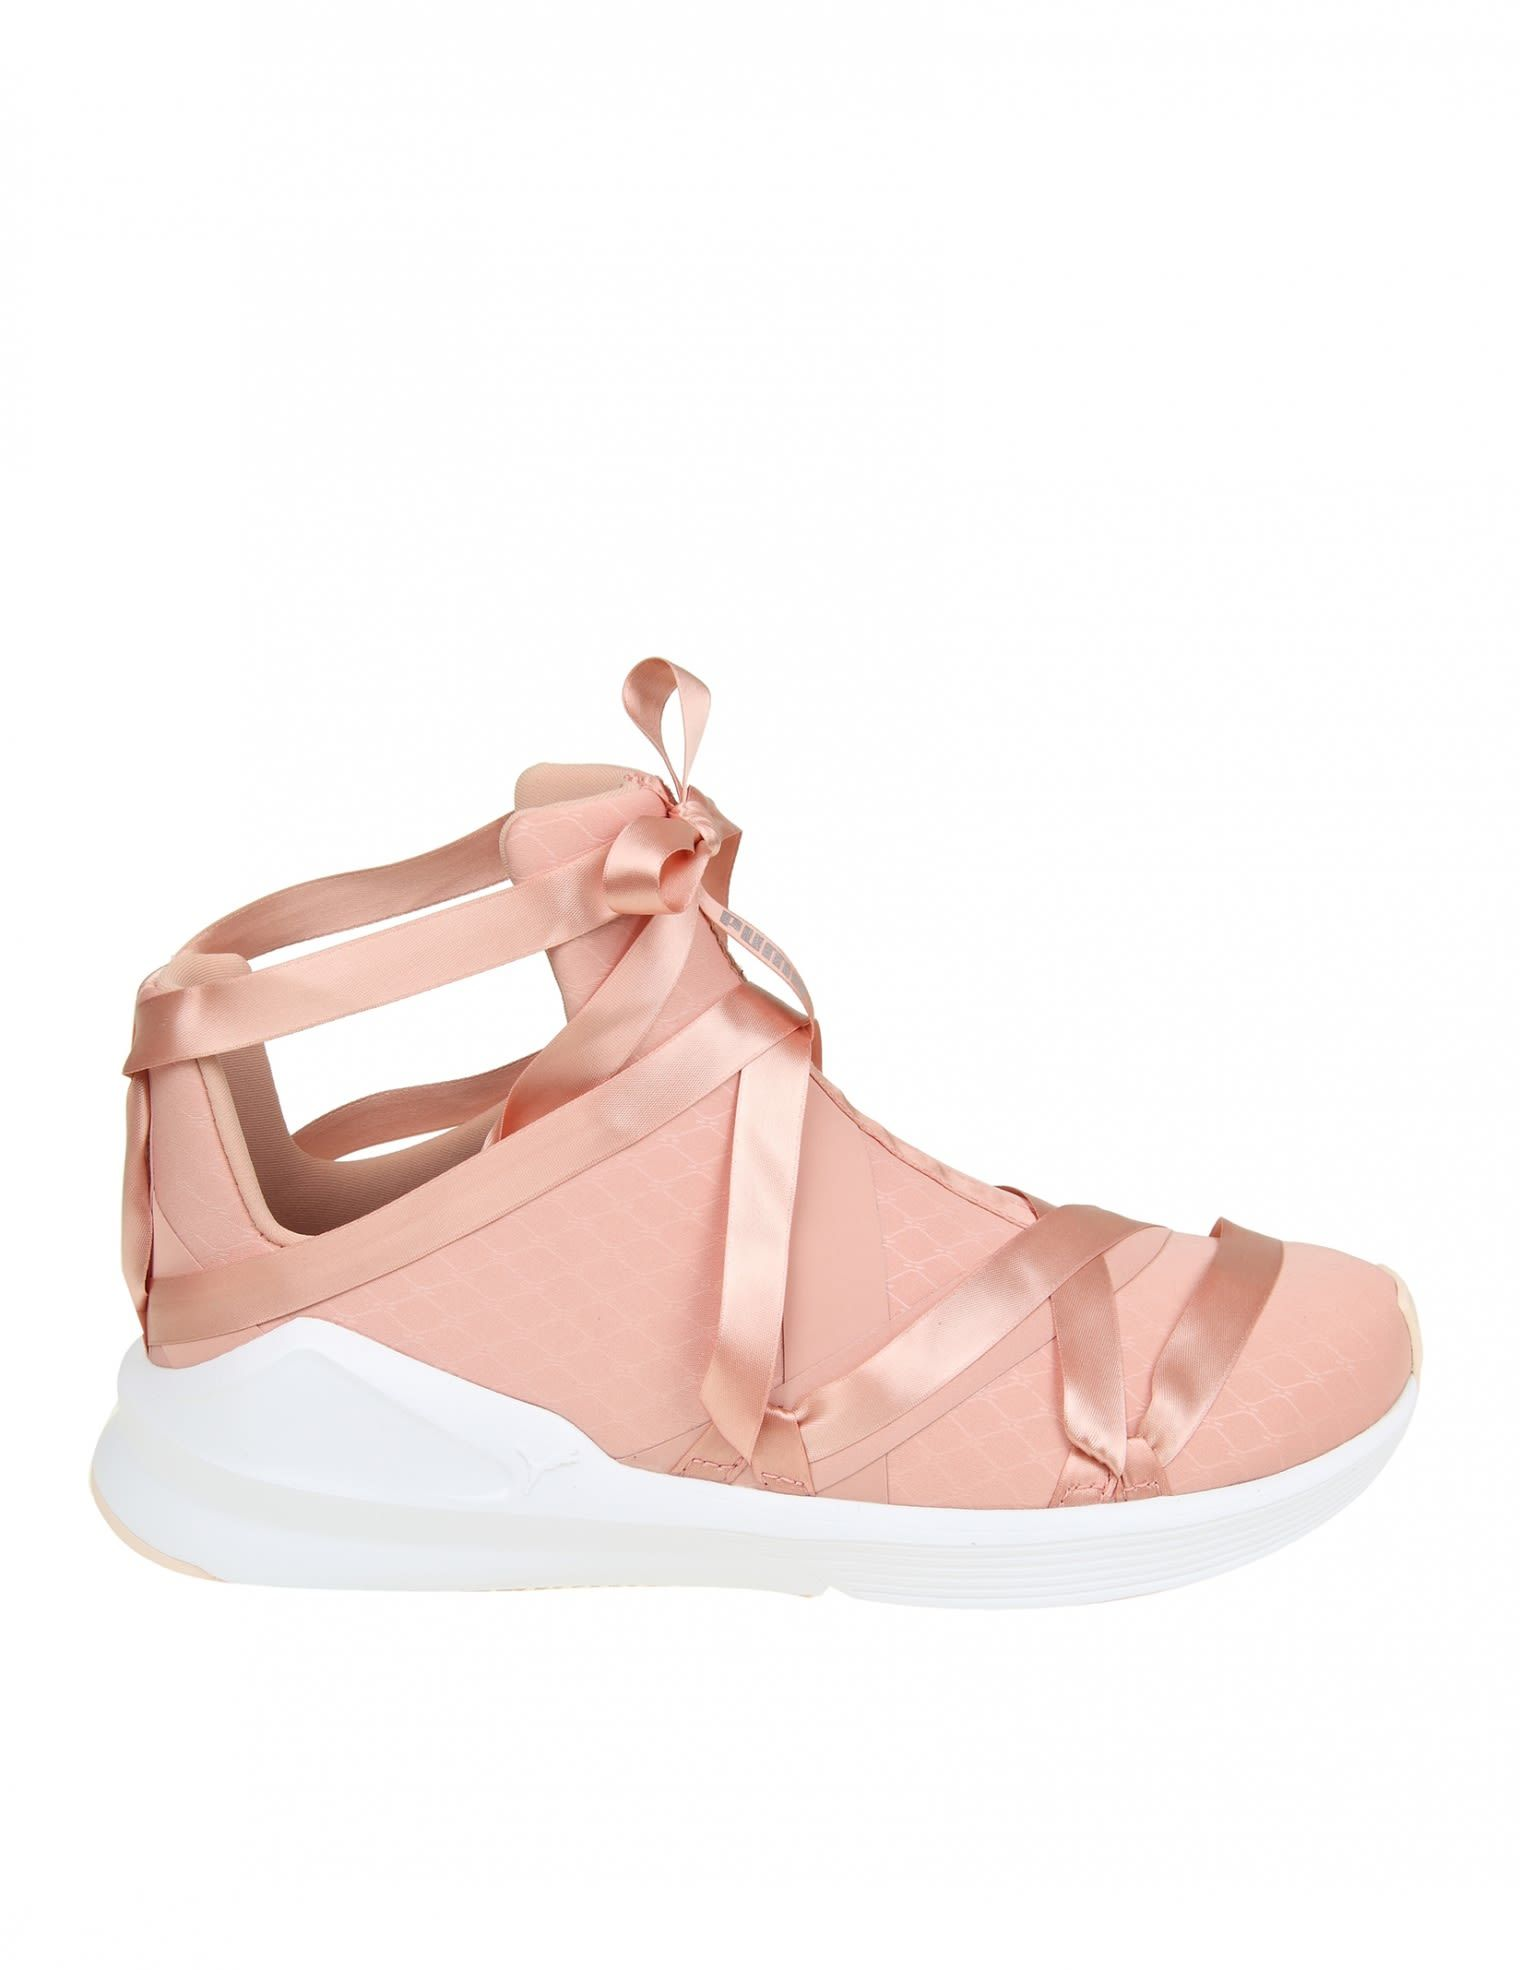 PUMA SNEAKERS FIERCE ROPE SATIN IN PINK FABRIC.  puma  shoes ... 864986474